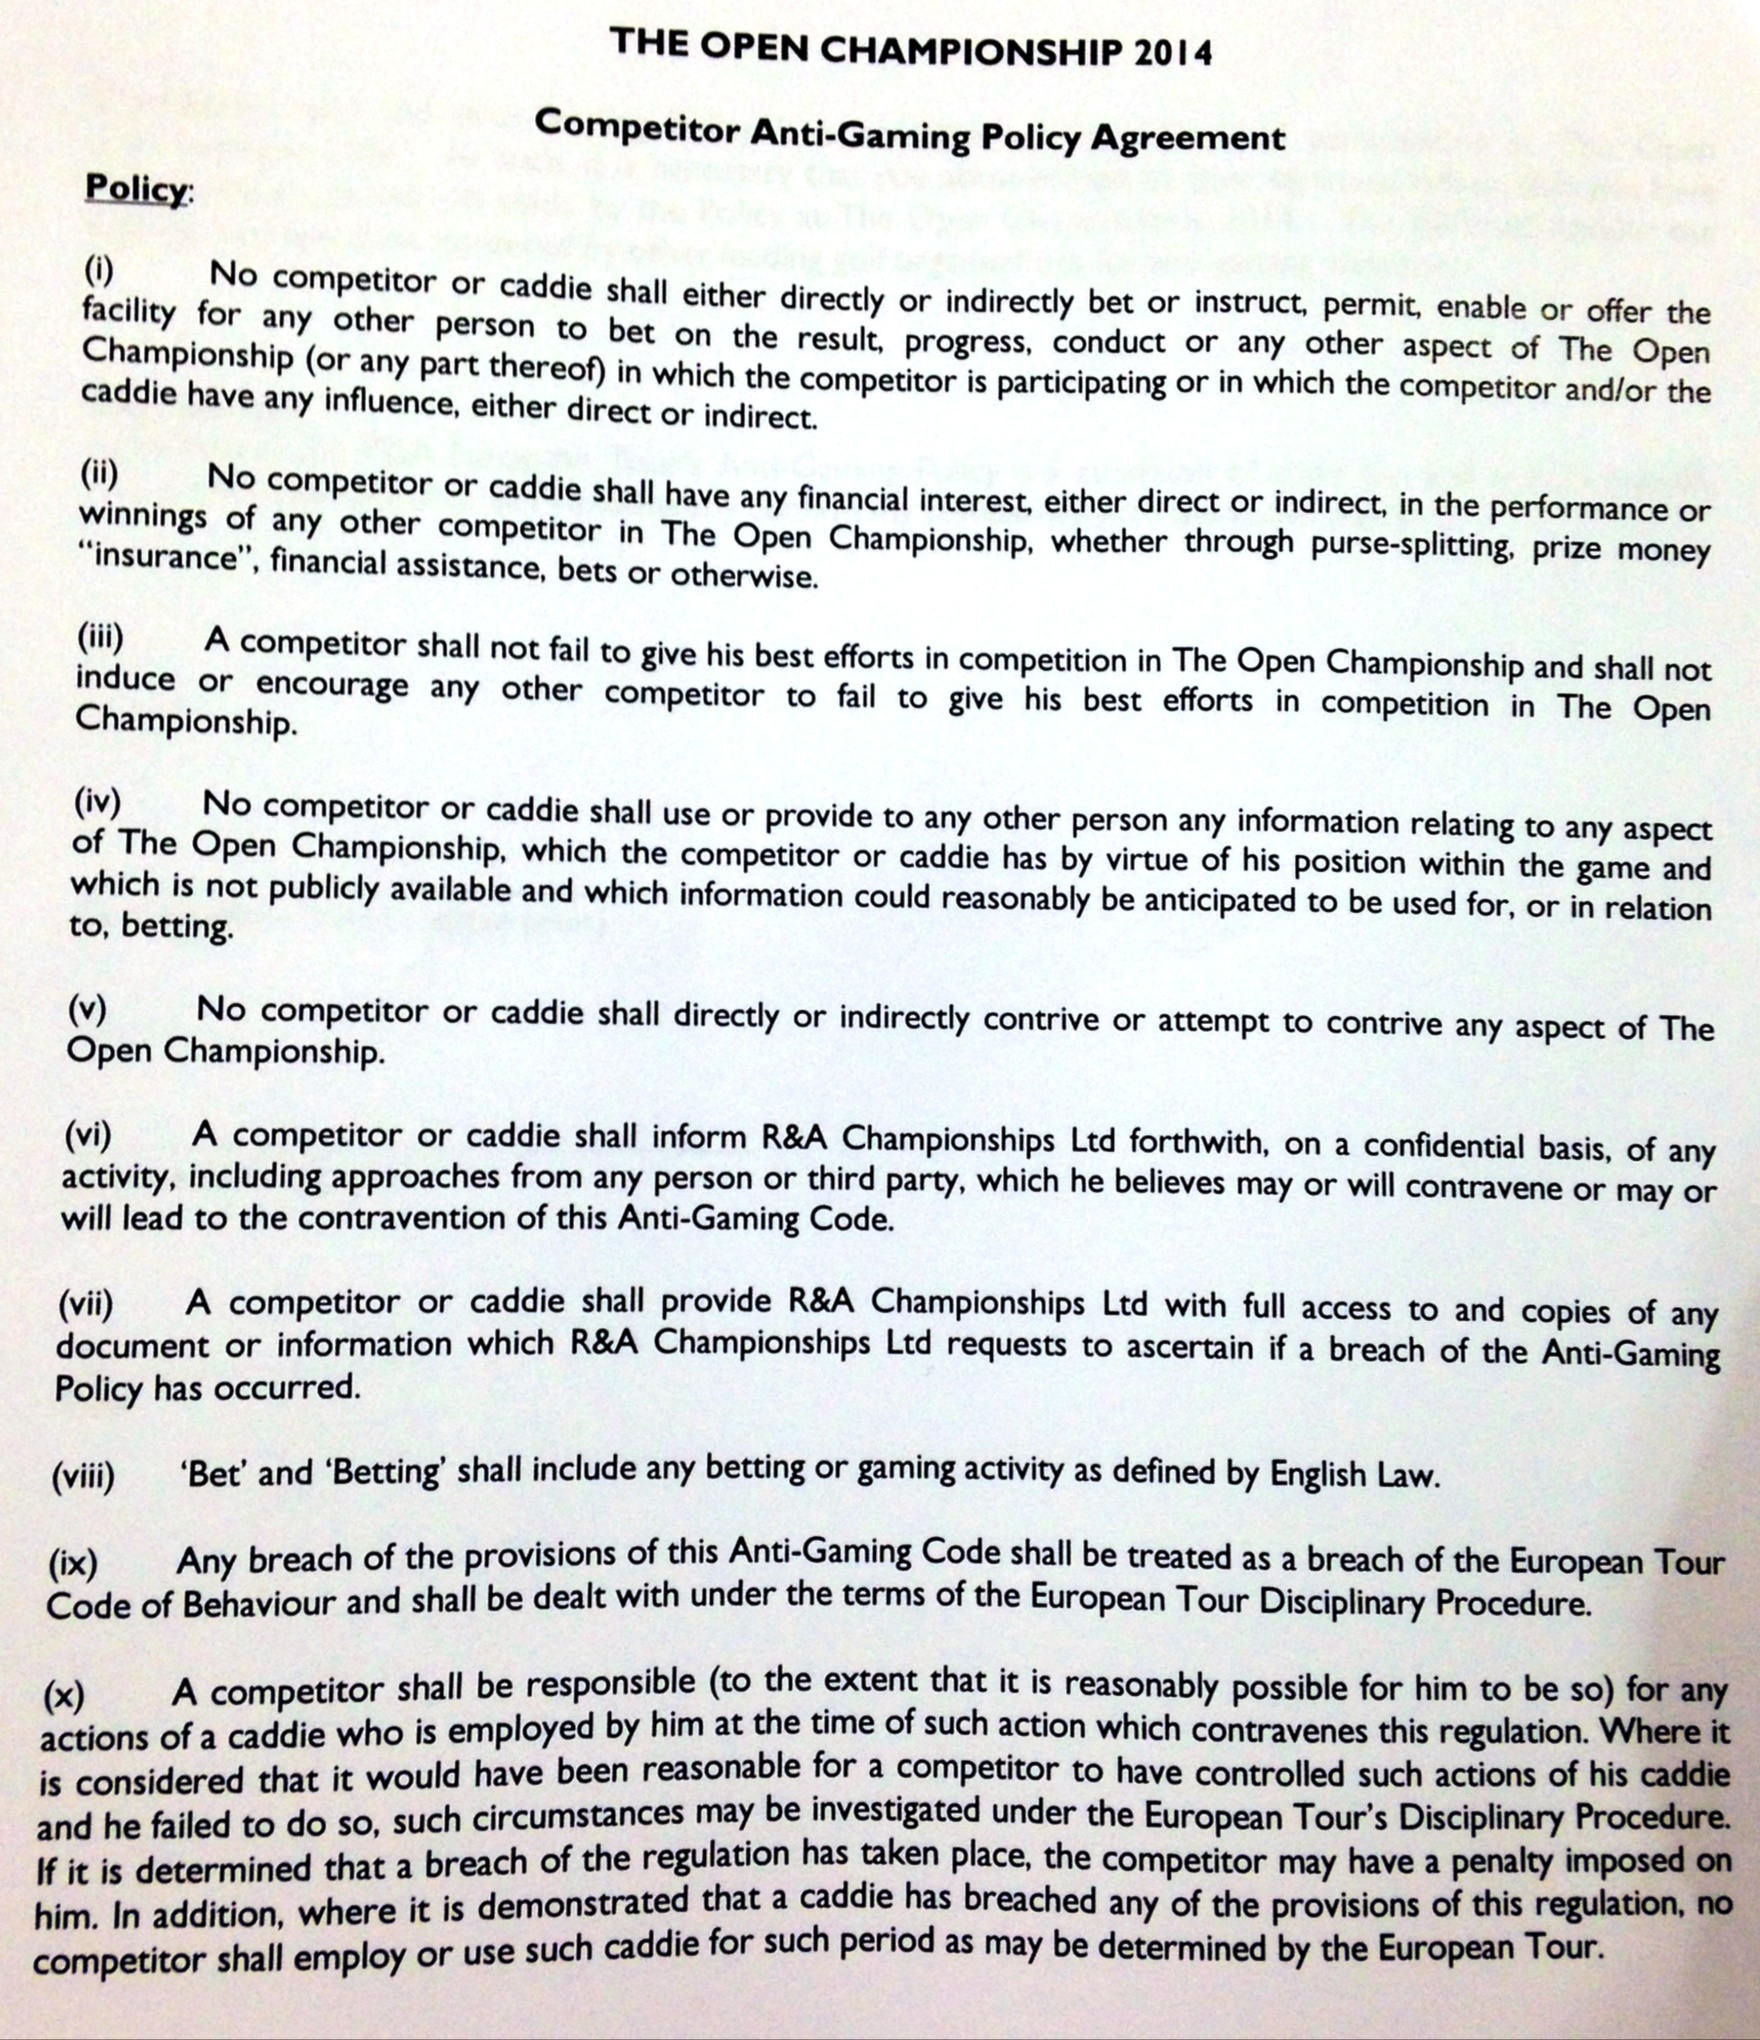 The Open Championship's Anti-Gaming Policy agreement that players signed prior to the 2014 tournament at Royal Liverpool.